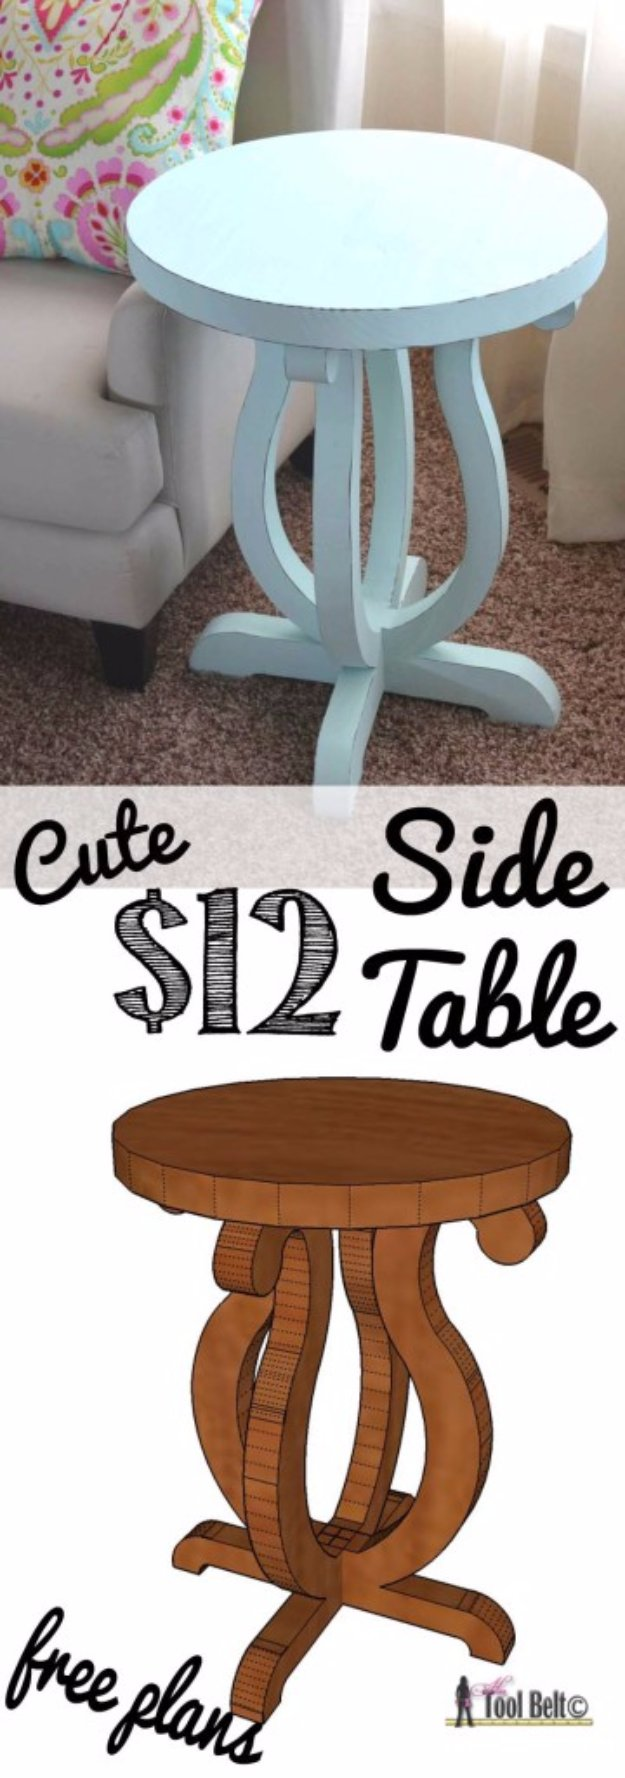 DIY End Tables with Step by Step Tutorials - Curvy Side Table - Cheap and Easy End Table Projects and Plans - Wood, Storage, Pallet, Crate, Modern and Rustic. Bedroom and Living Room Decor Ideas #endtables #diydecor #diy